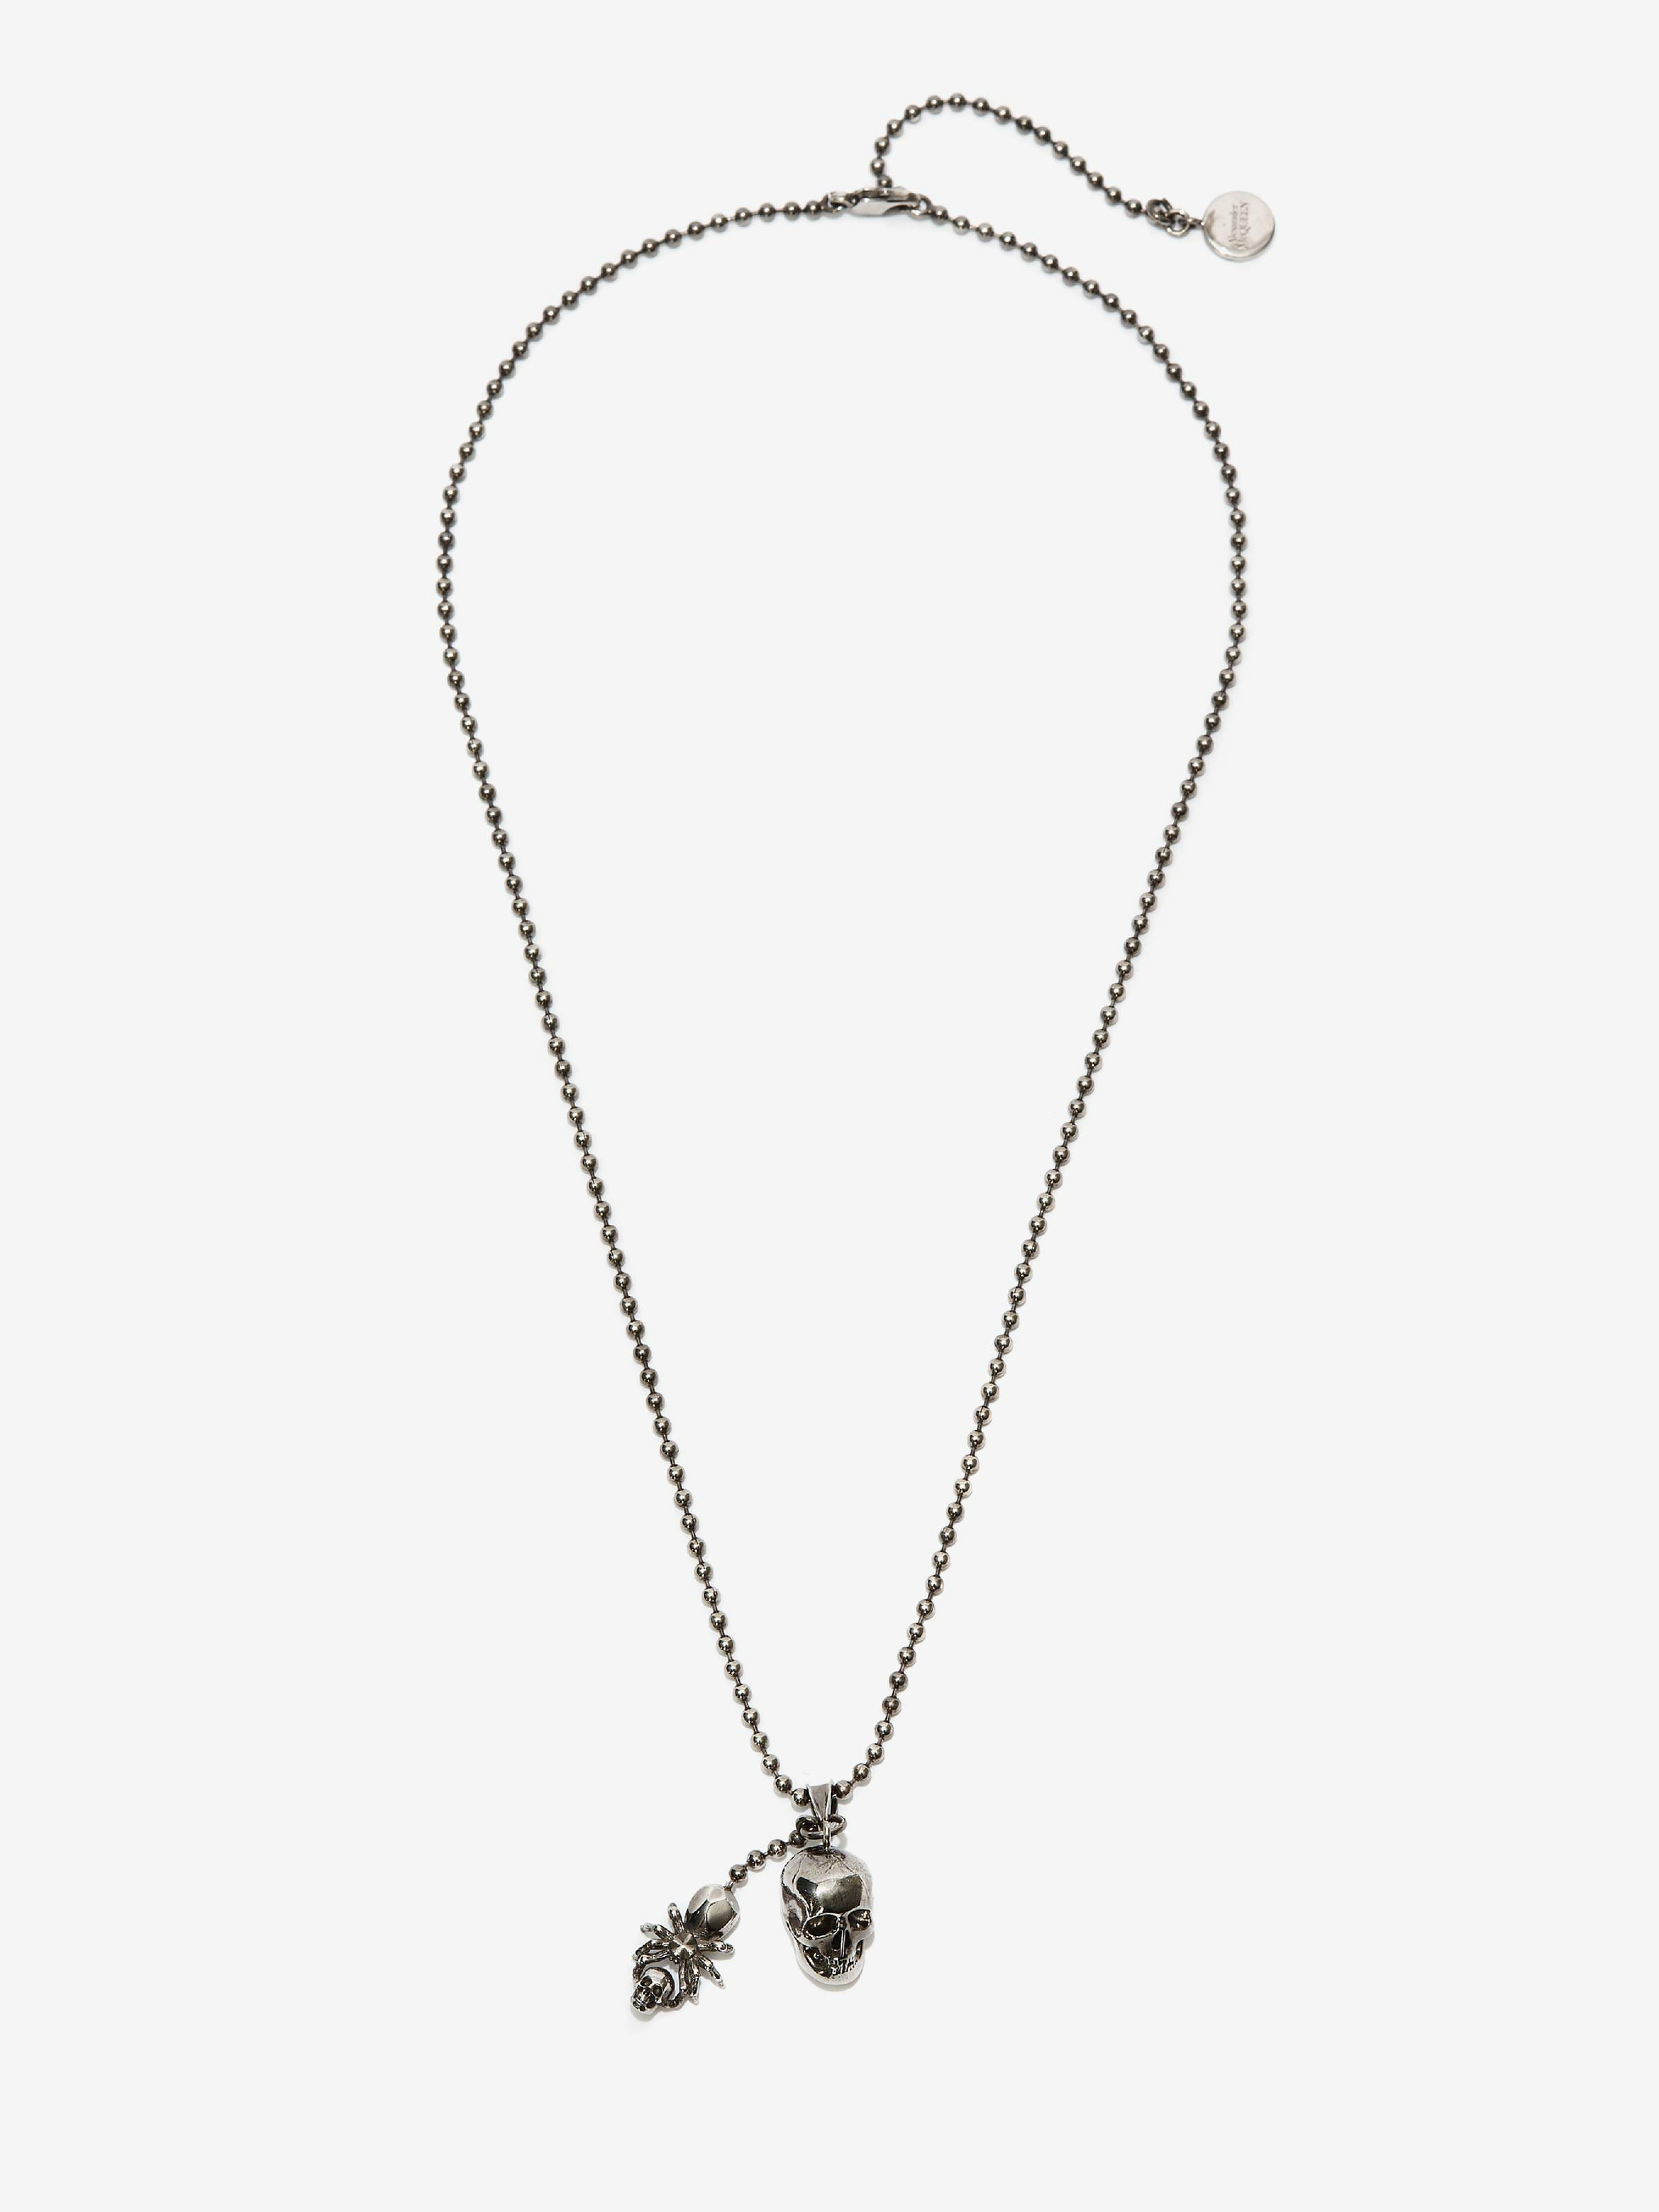 Spider and Skull Necklace 0